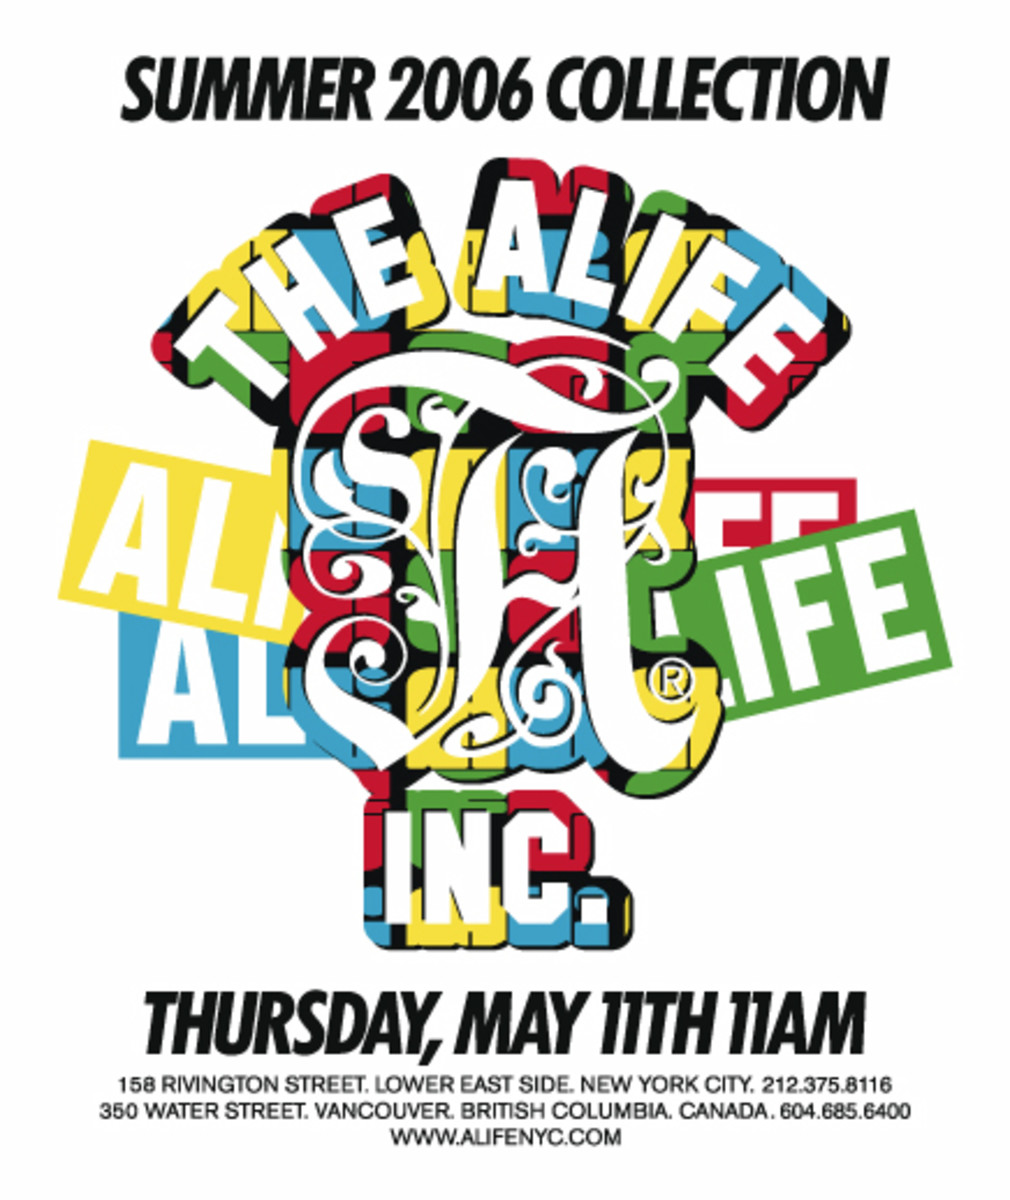 ALIFE - Summer 2006 Collection Drops - 3